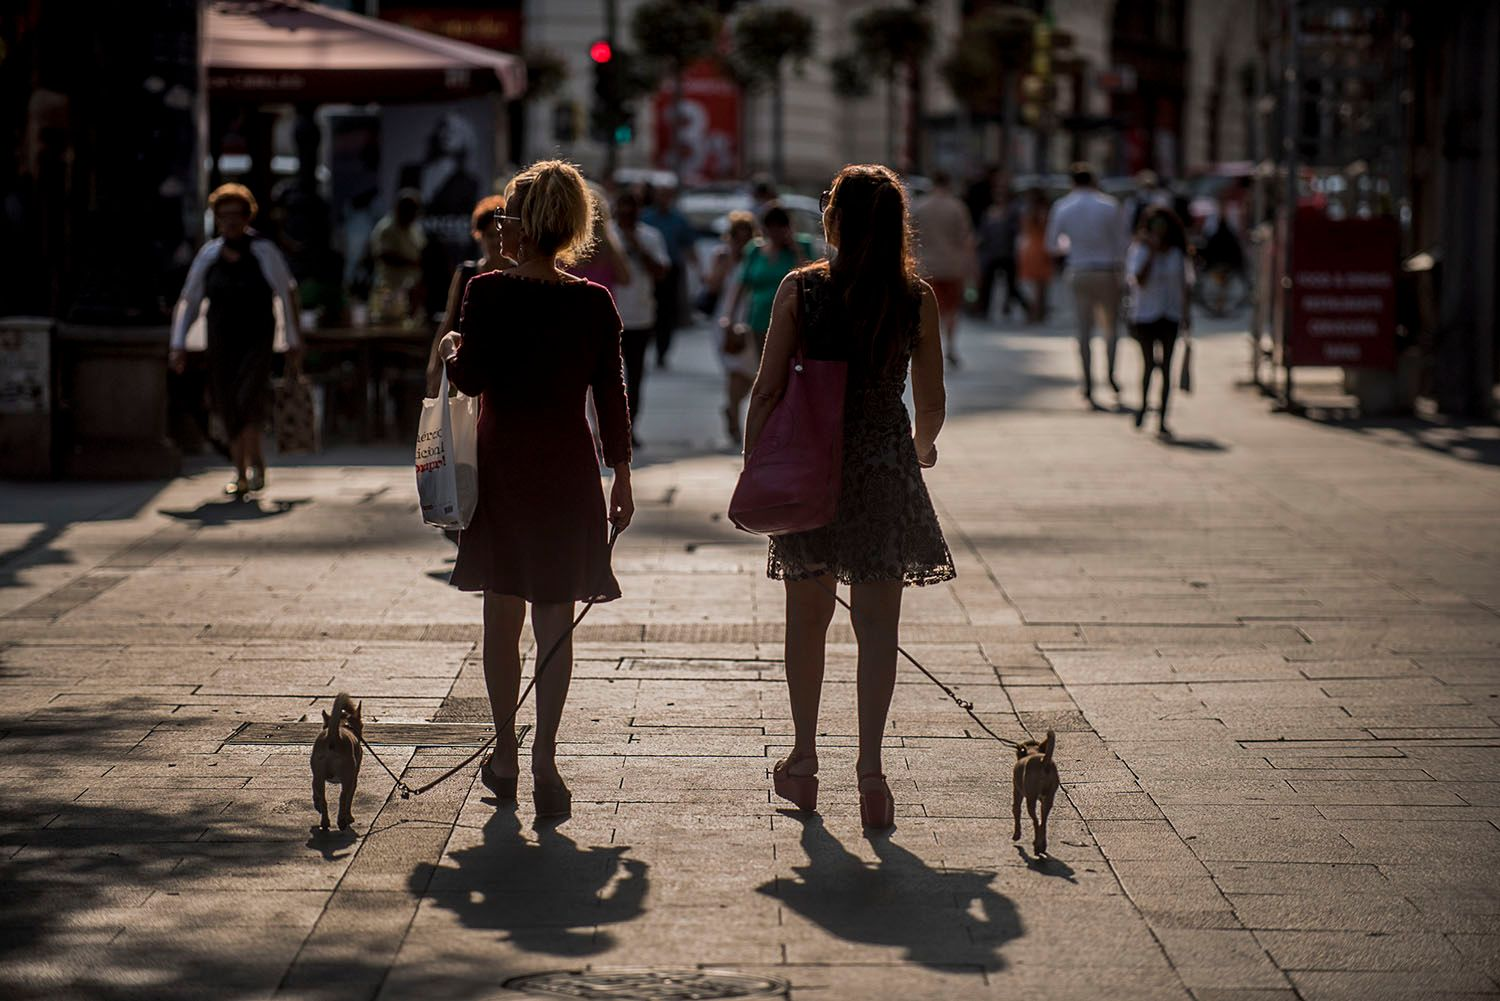 Women walking their dogs